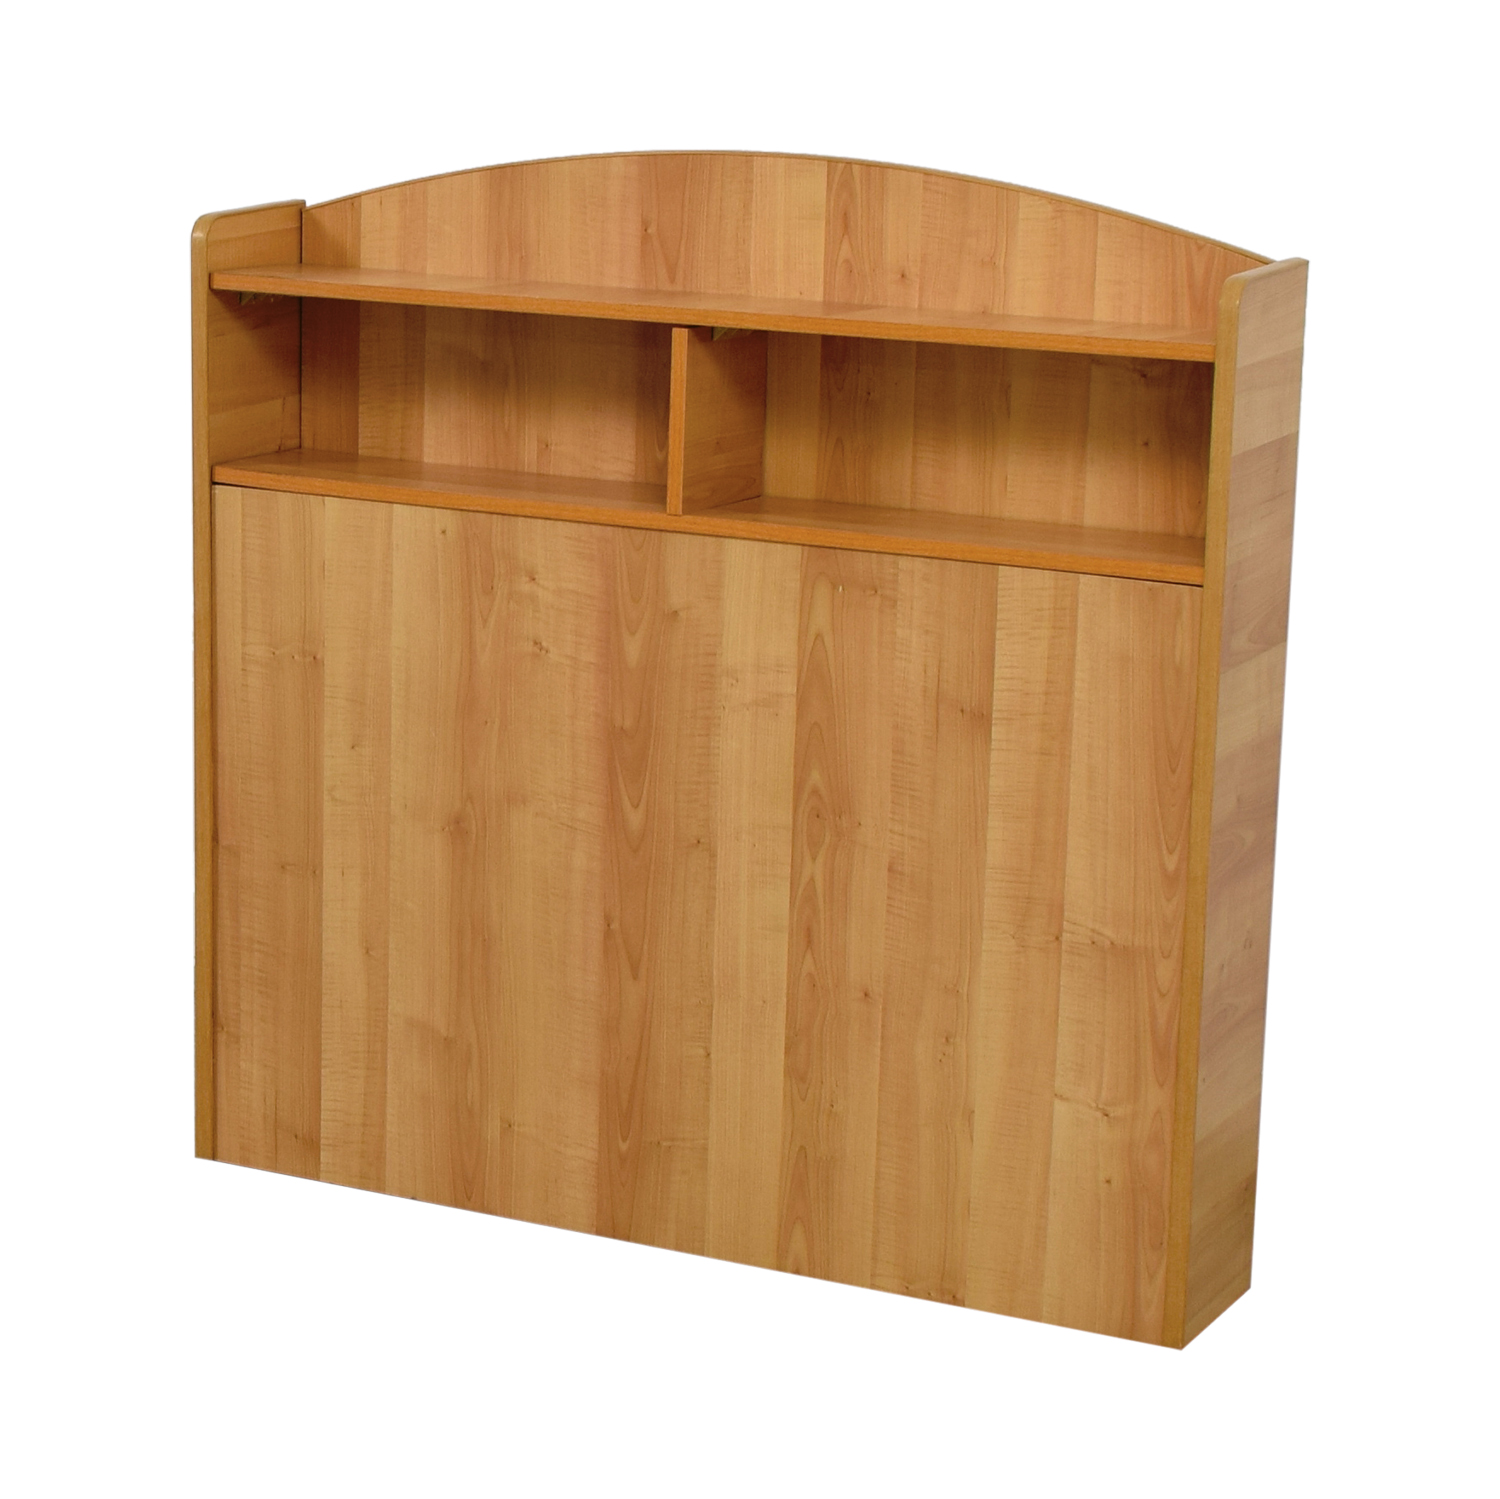 90 Off Captain Pine Wood Twin Headboard With Shelves Beds